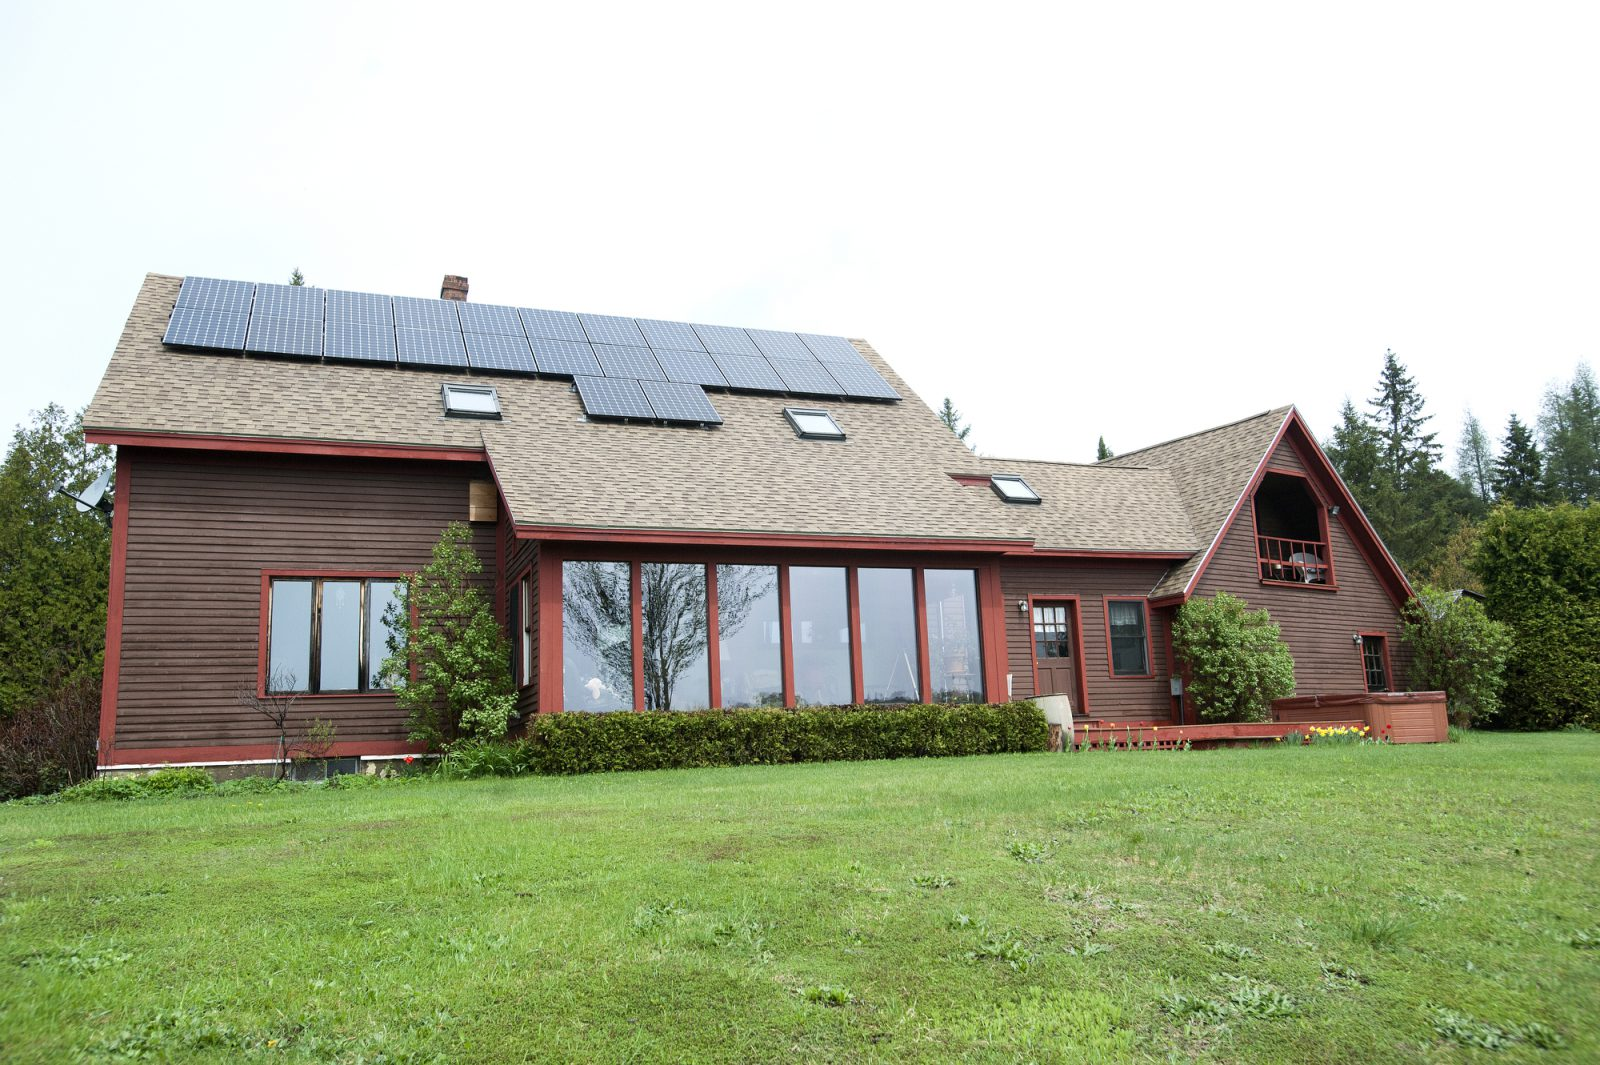 A solar home in Danville